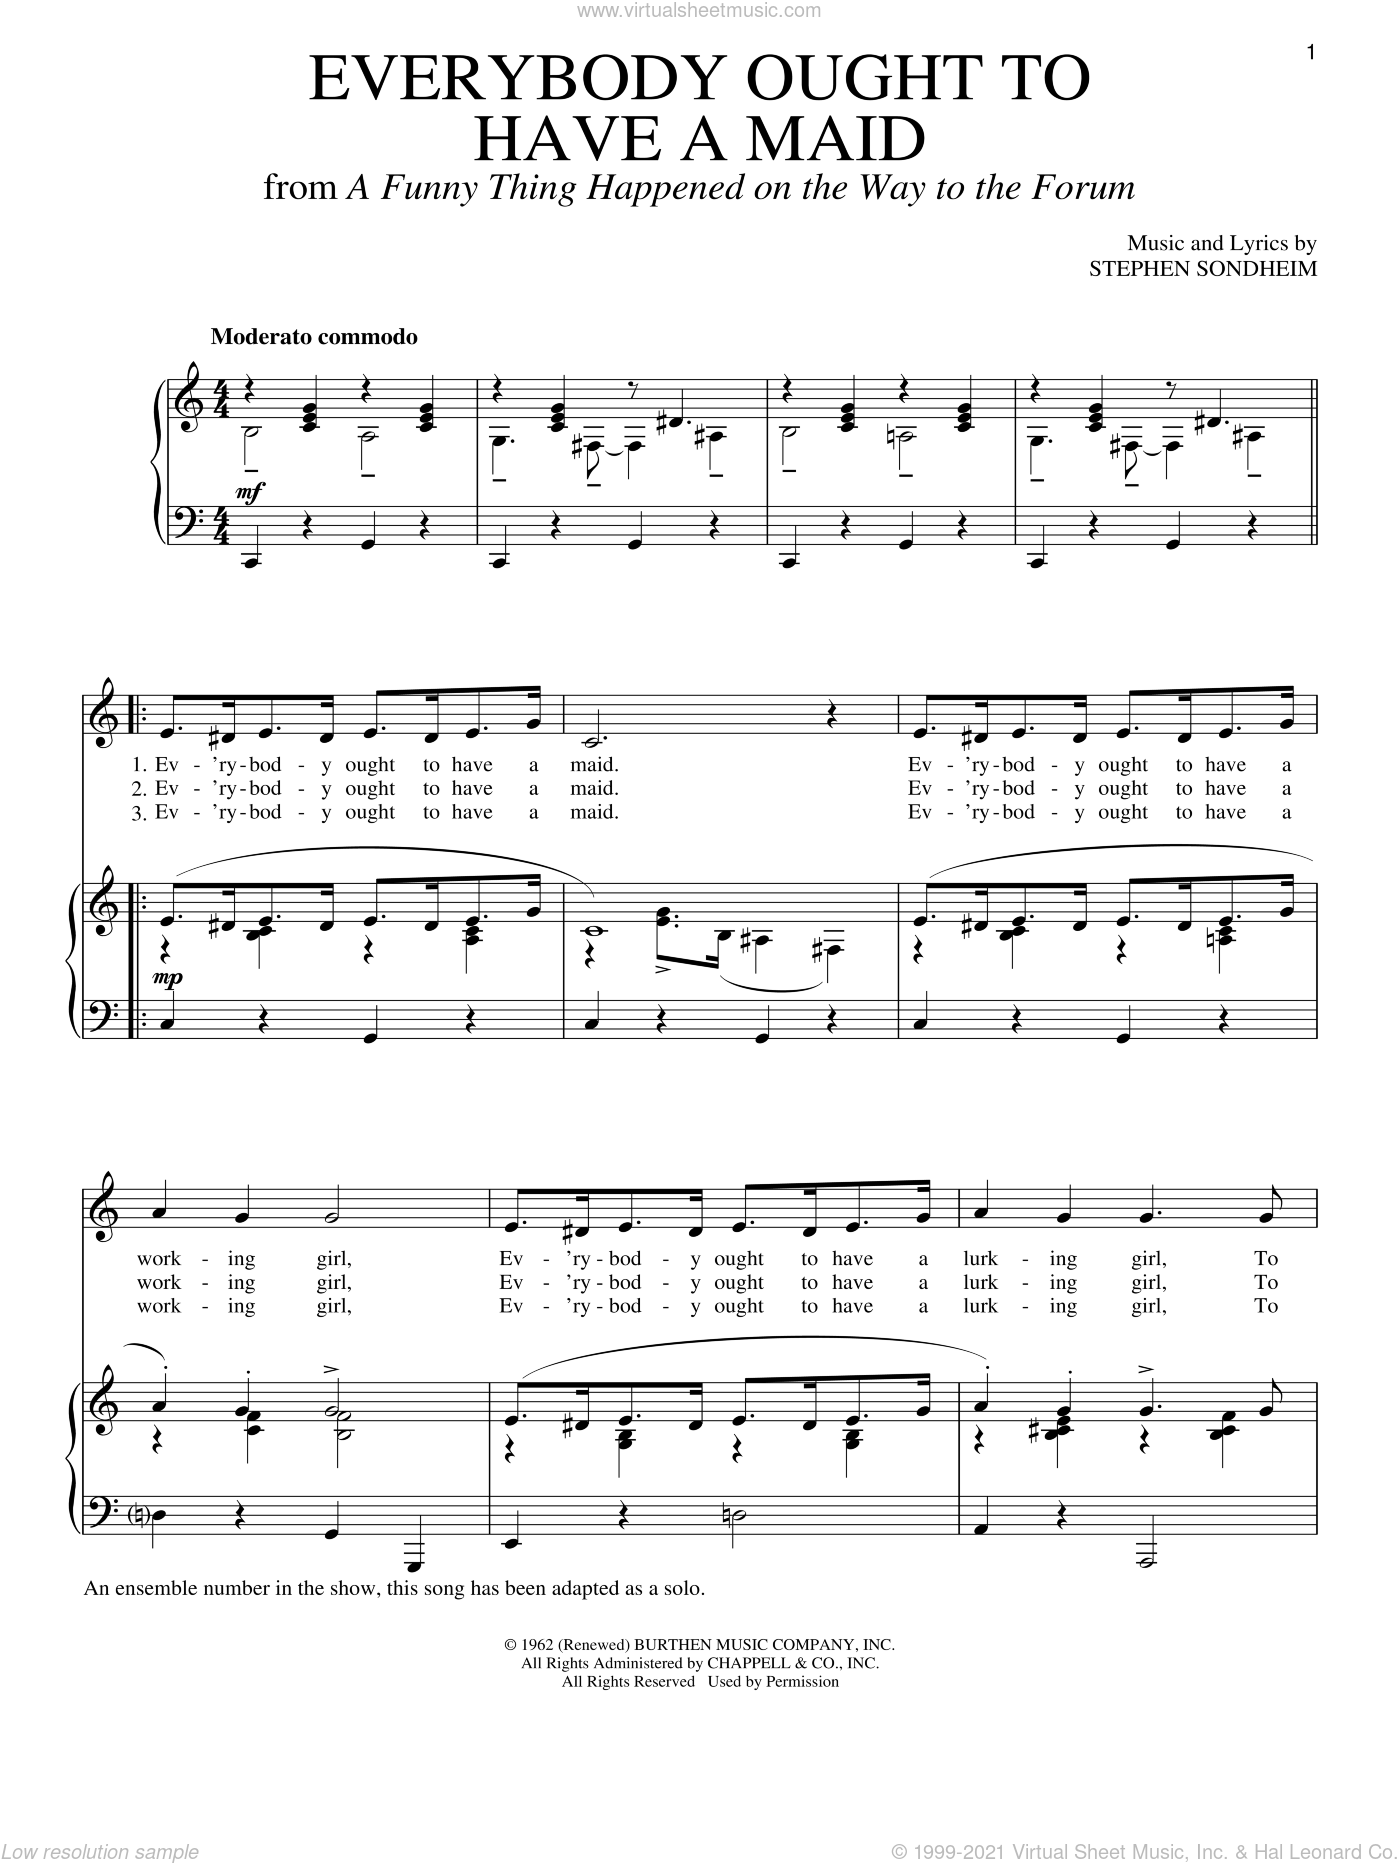 Everybody Ought To Have A Maid sheet music for voice and piano by Stephen Sondheim, intermediate skill level